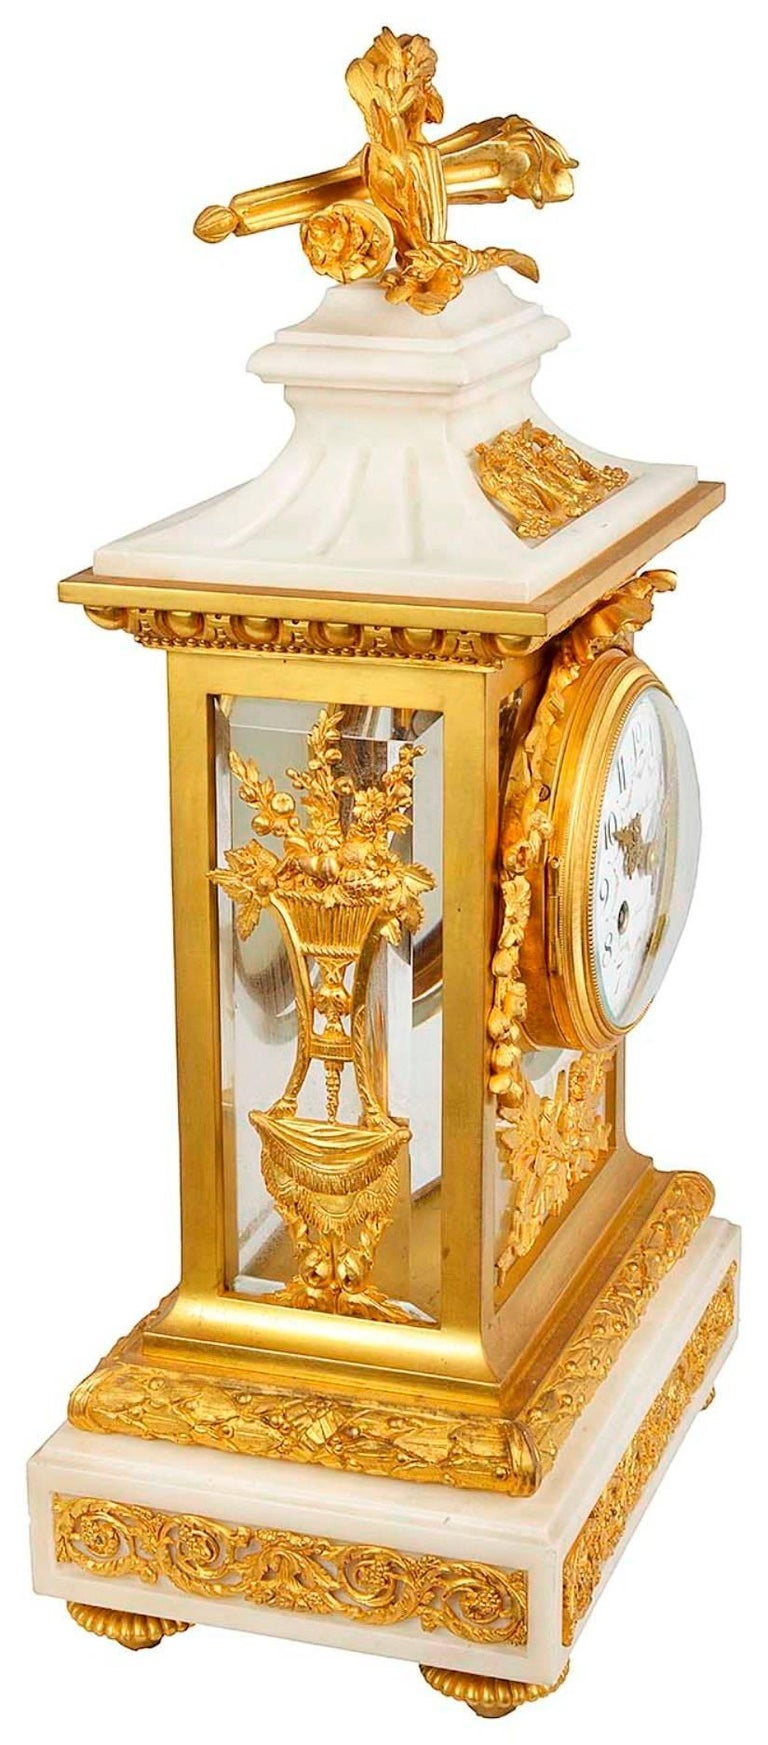 French 19th Century Louis XVI Style Mantel Clock For Sale